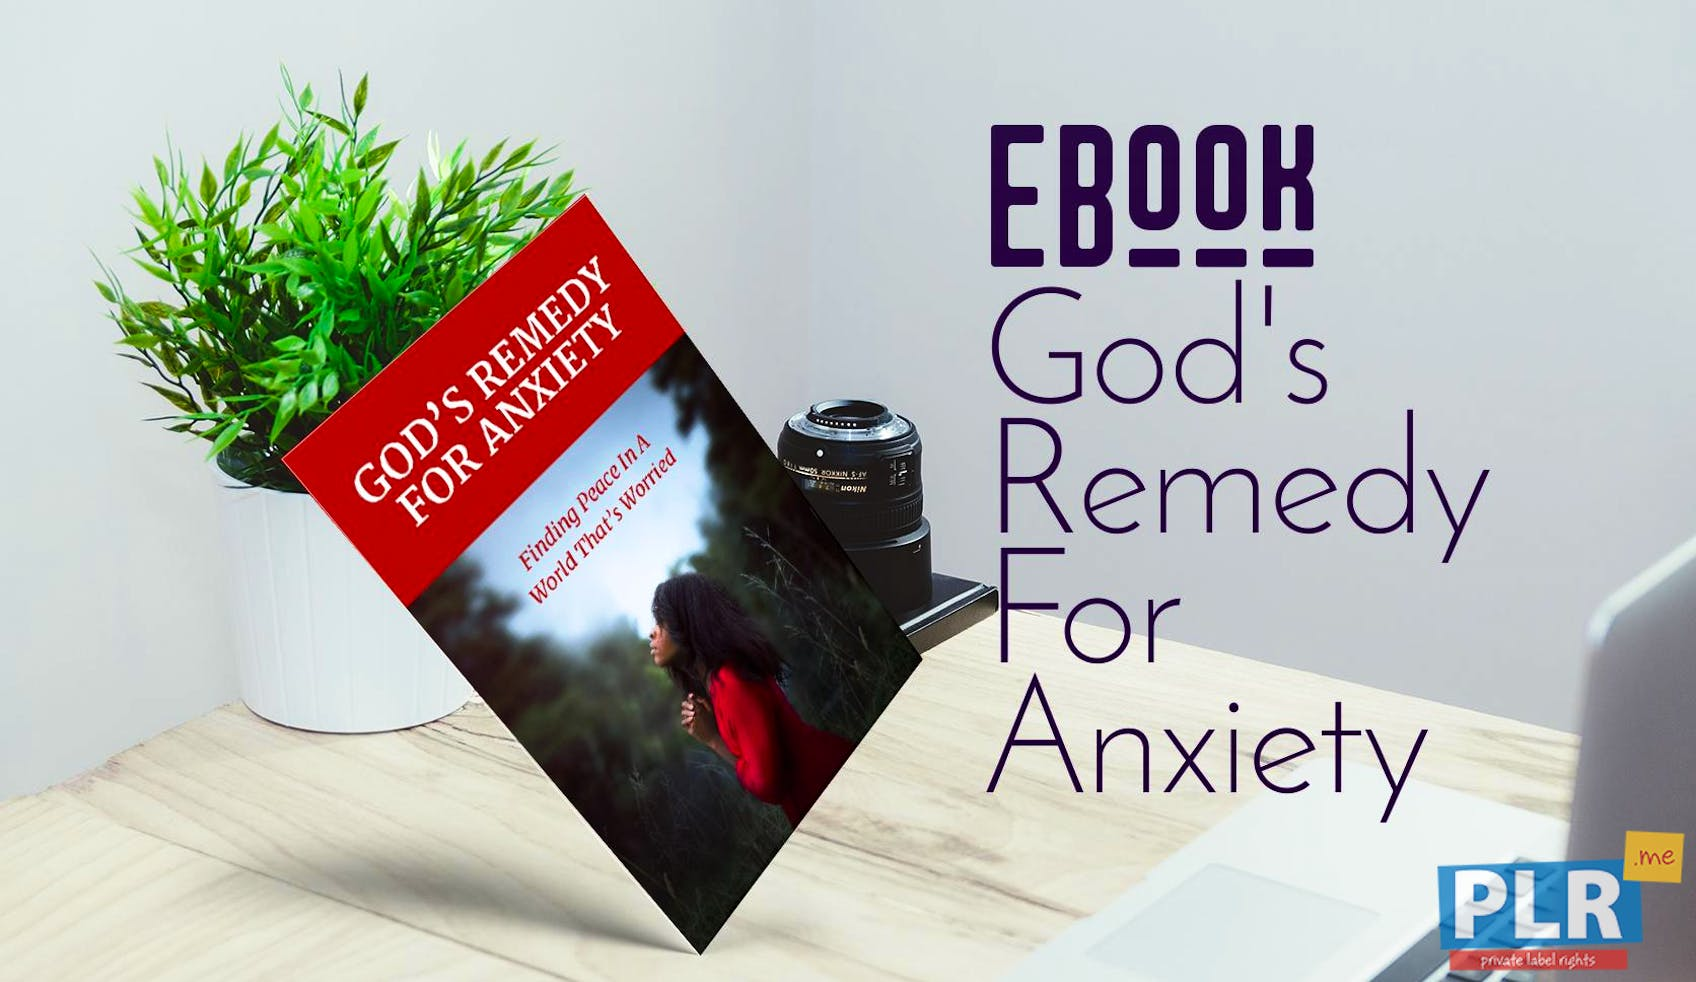 God's Remedy For Anxiety